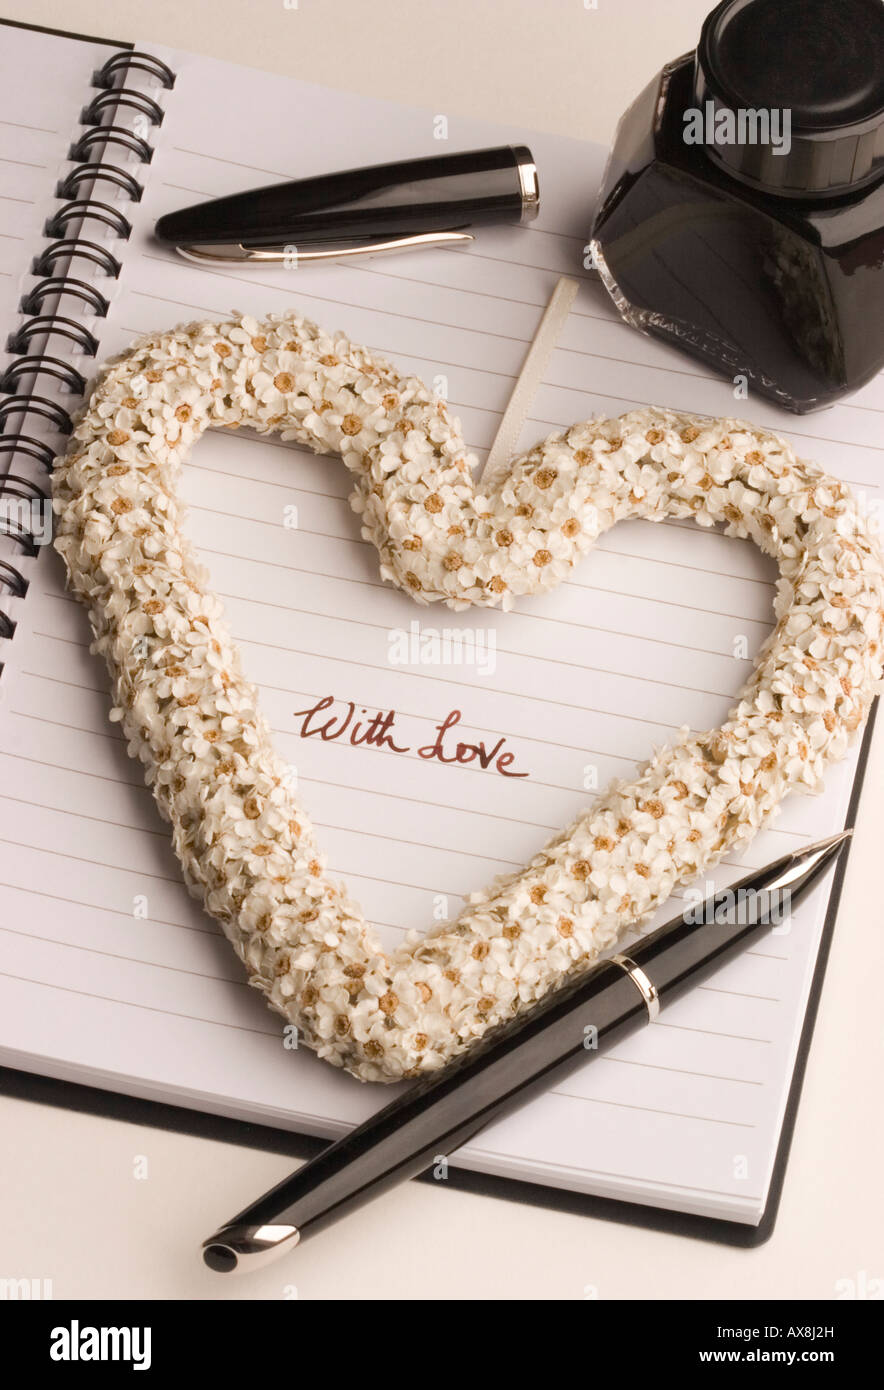 The words 'with love' hand written by an ink fountain pen within a heart shape made of flowers - Stock Image